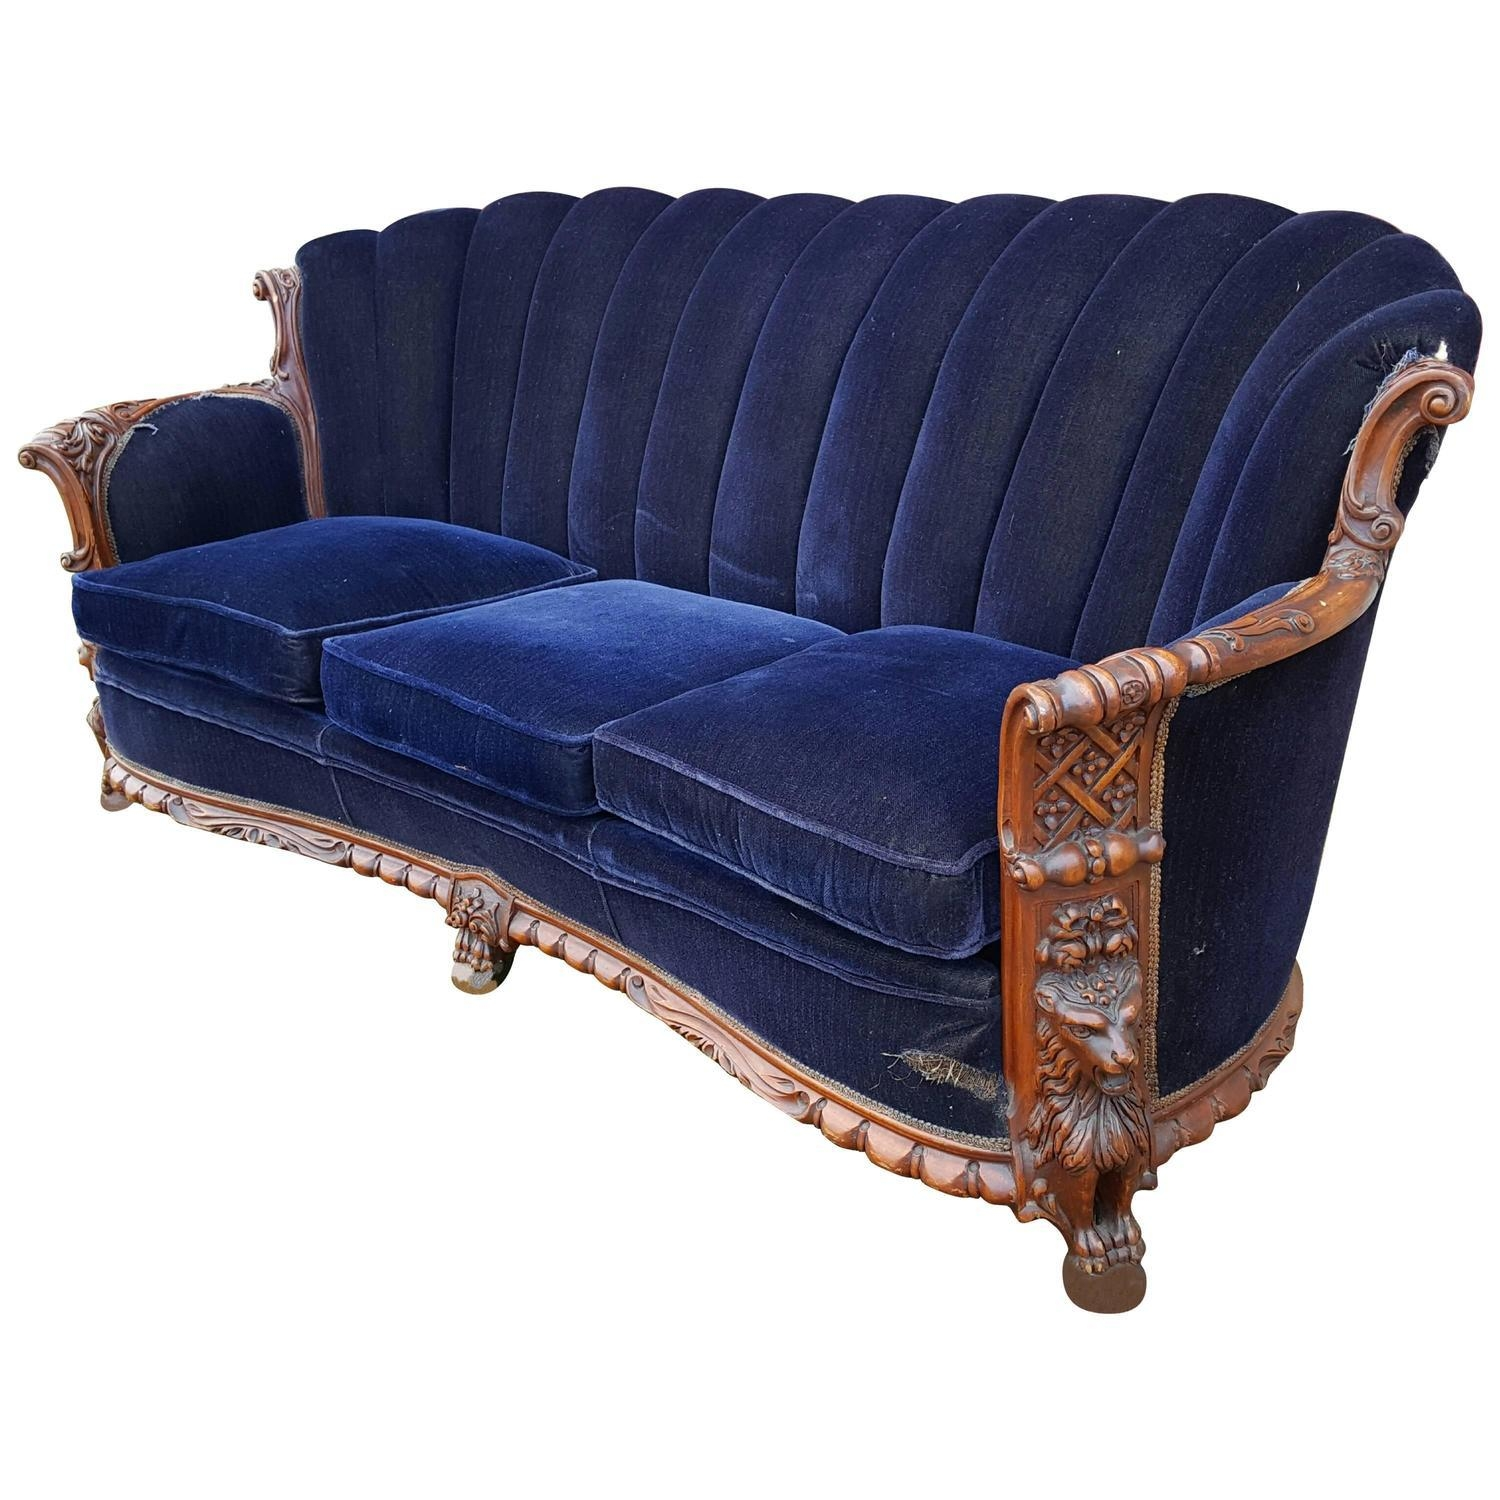 1930S Mohair And Carved Wood Sofa, Carved Lion Motif At 1Stdibs With Carved Wood Sofas (Image 1 of 20)